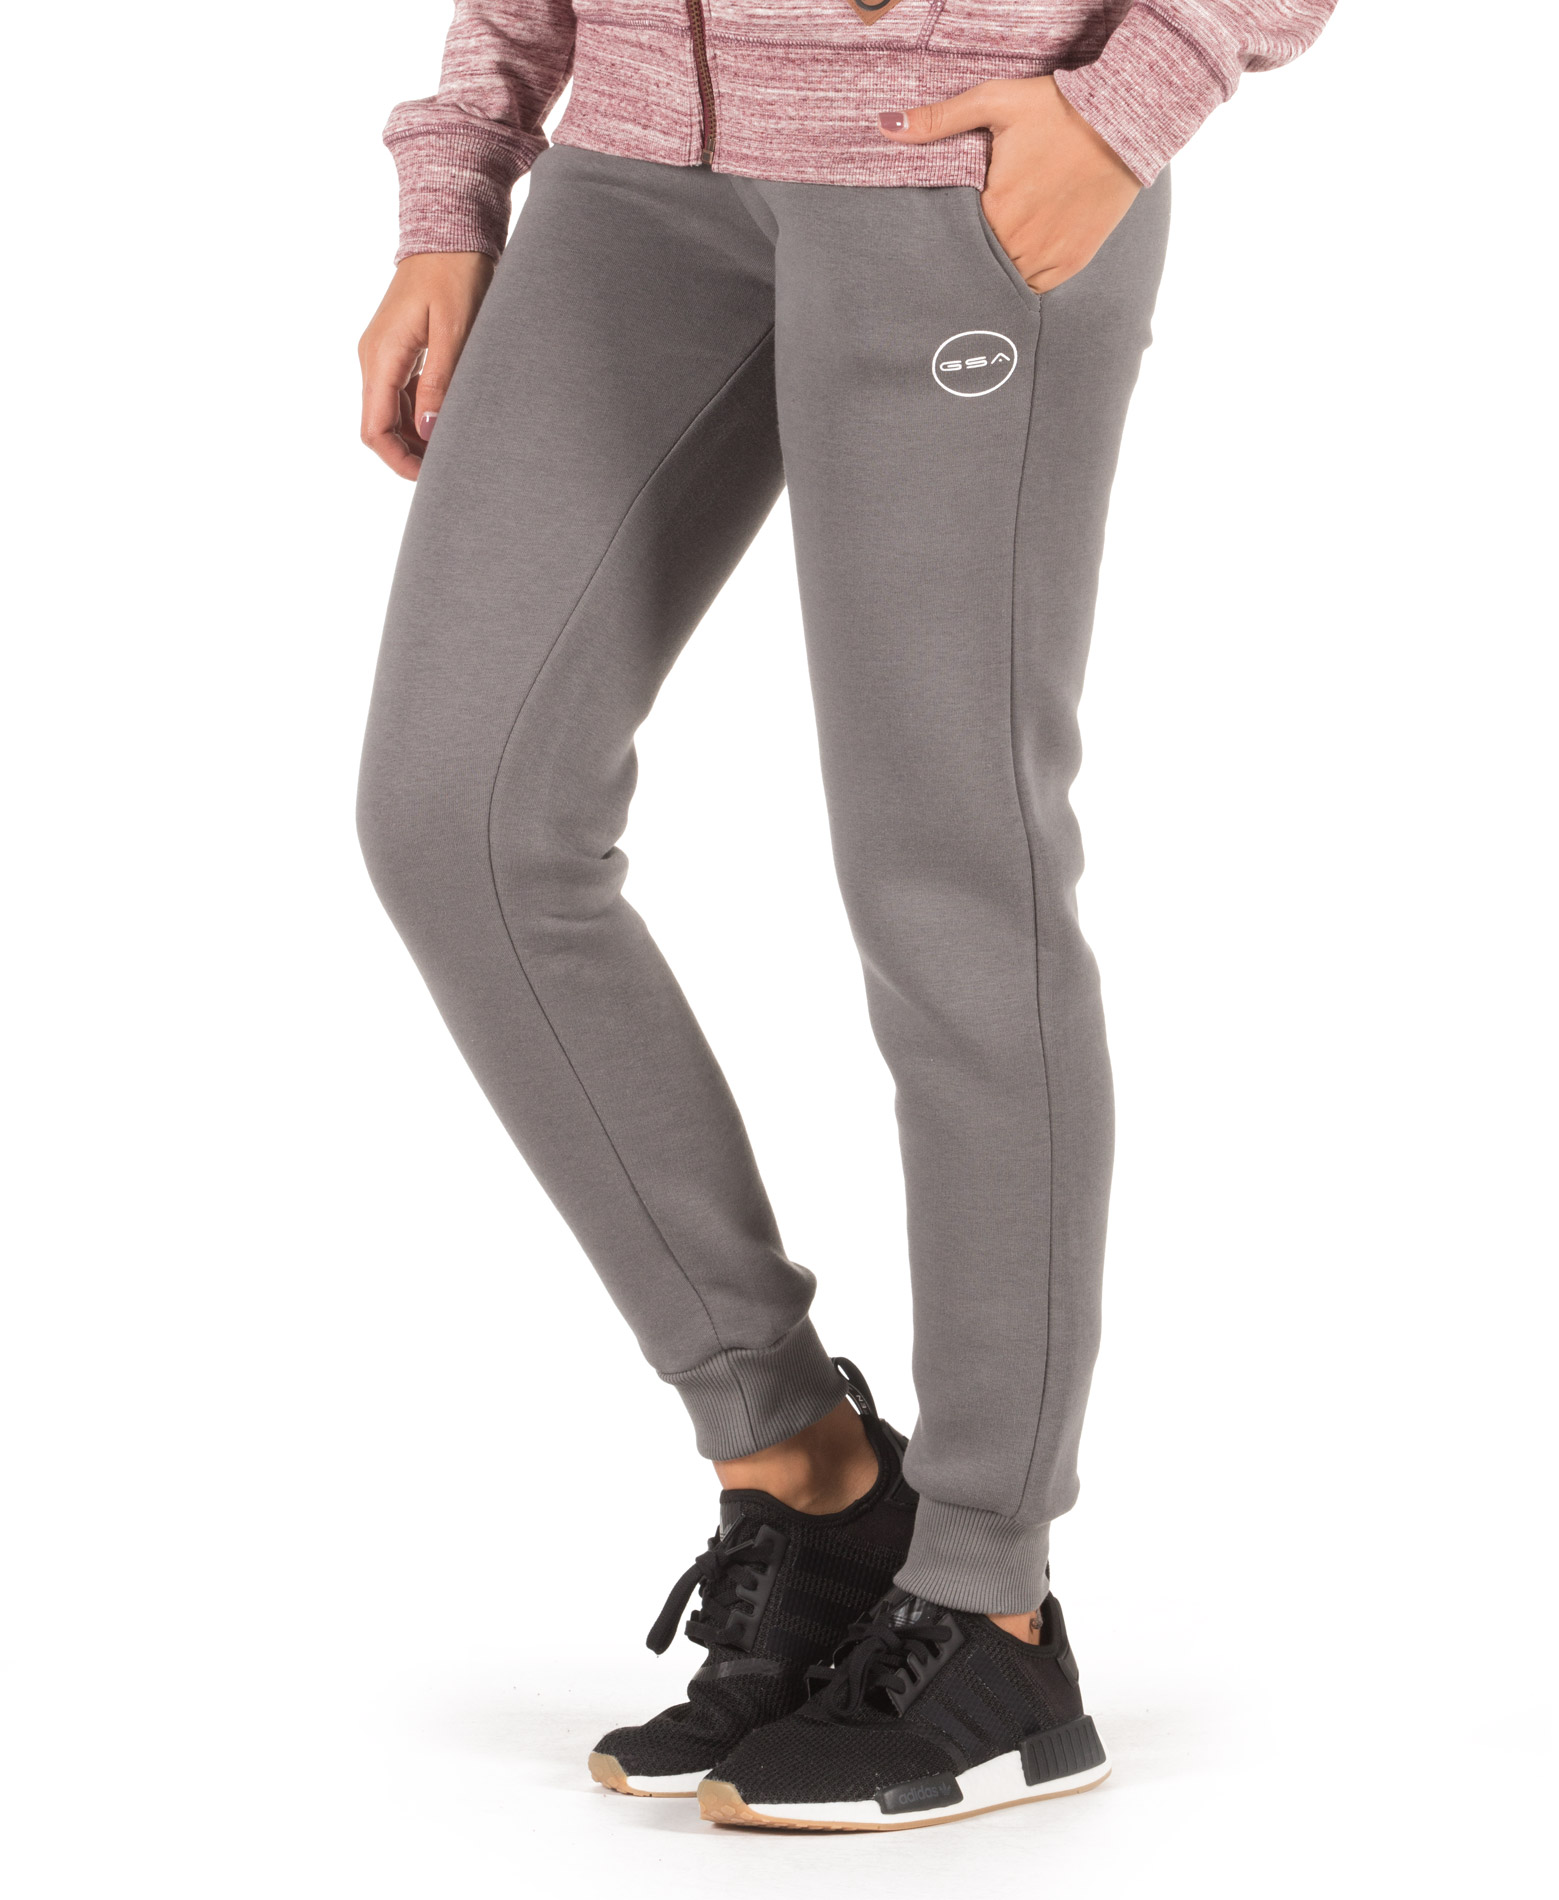 GSA SUPERCOTTON JOGGER SWEATPANTS 17-28033-06 CHARCOAL Ανθρακί